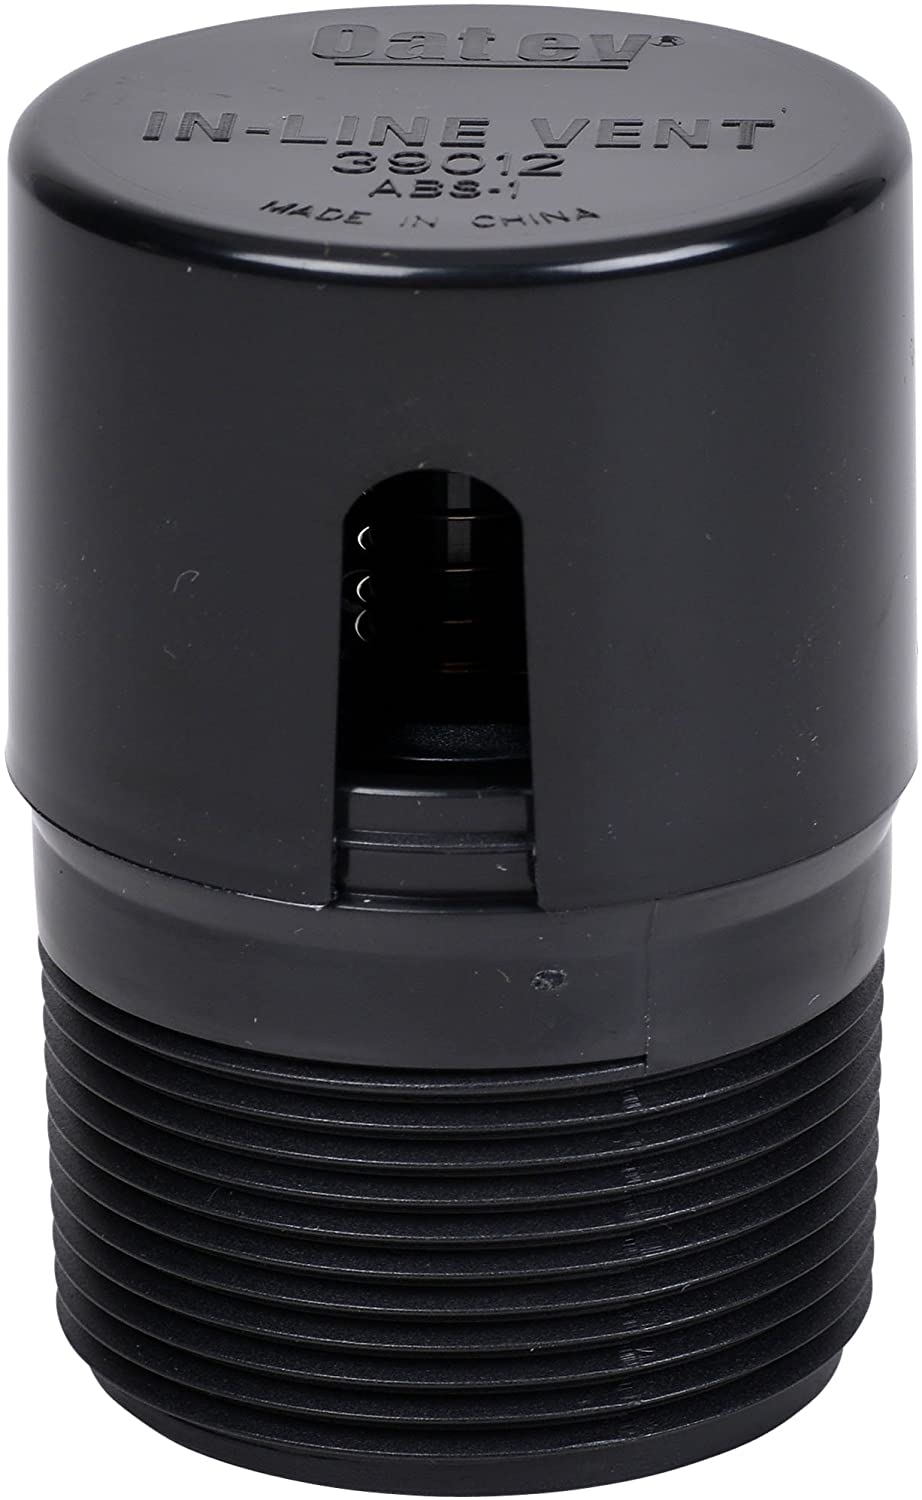 Oatey 39012 ABS In-Line Vent 2X2 13/16, Black - Plumbing Hoses -